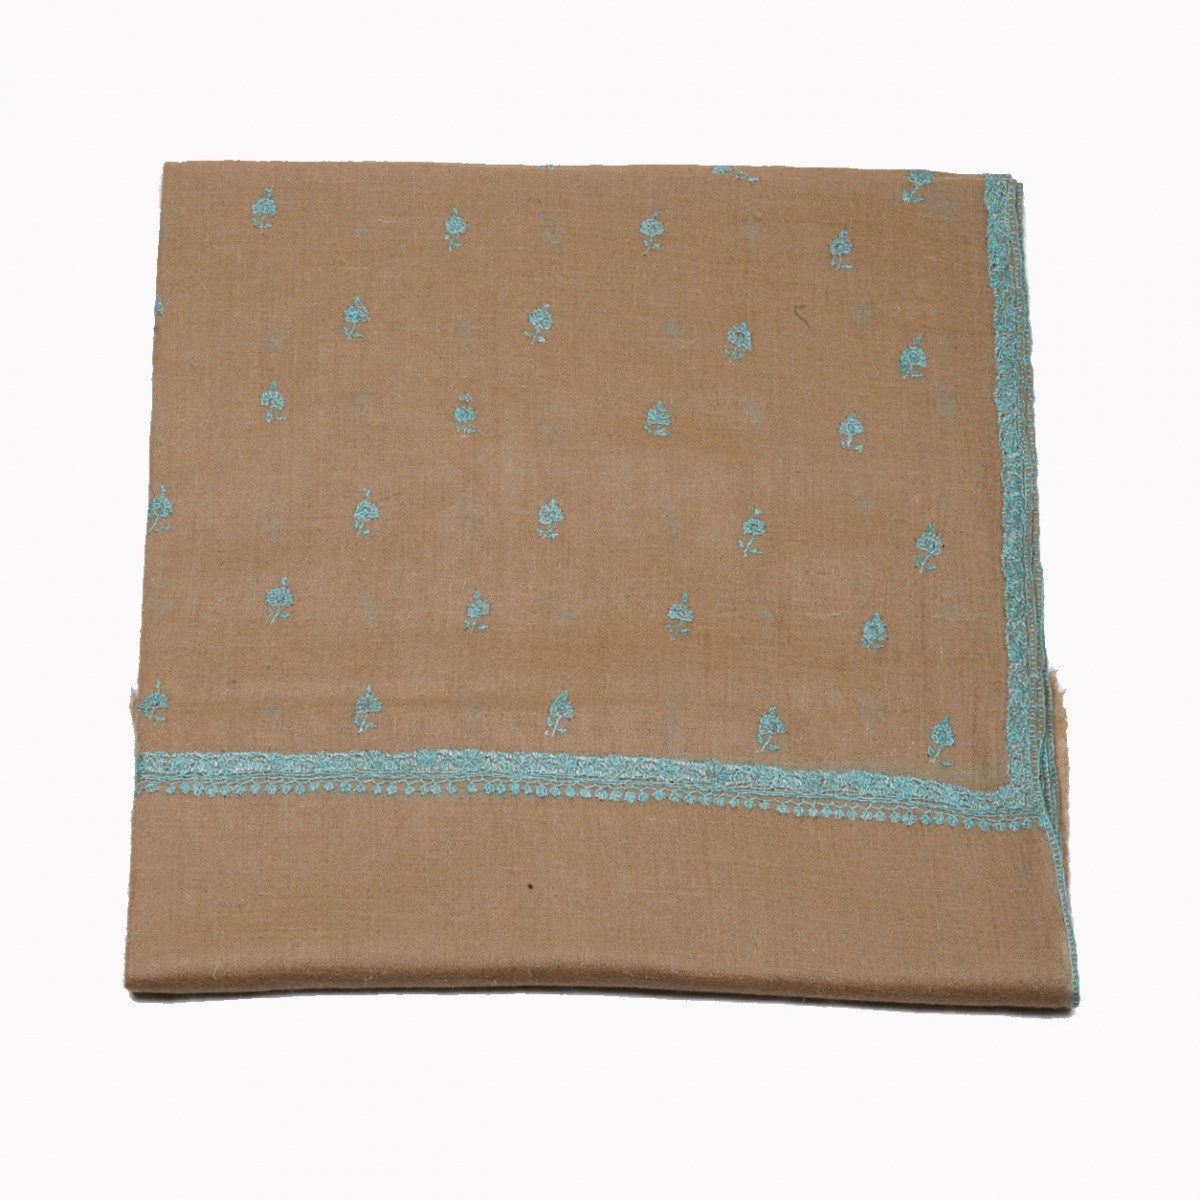 Embroidered Handloom Pashmina Stole - Natural Motifs Scarf